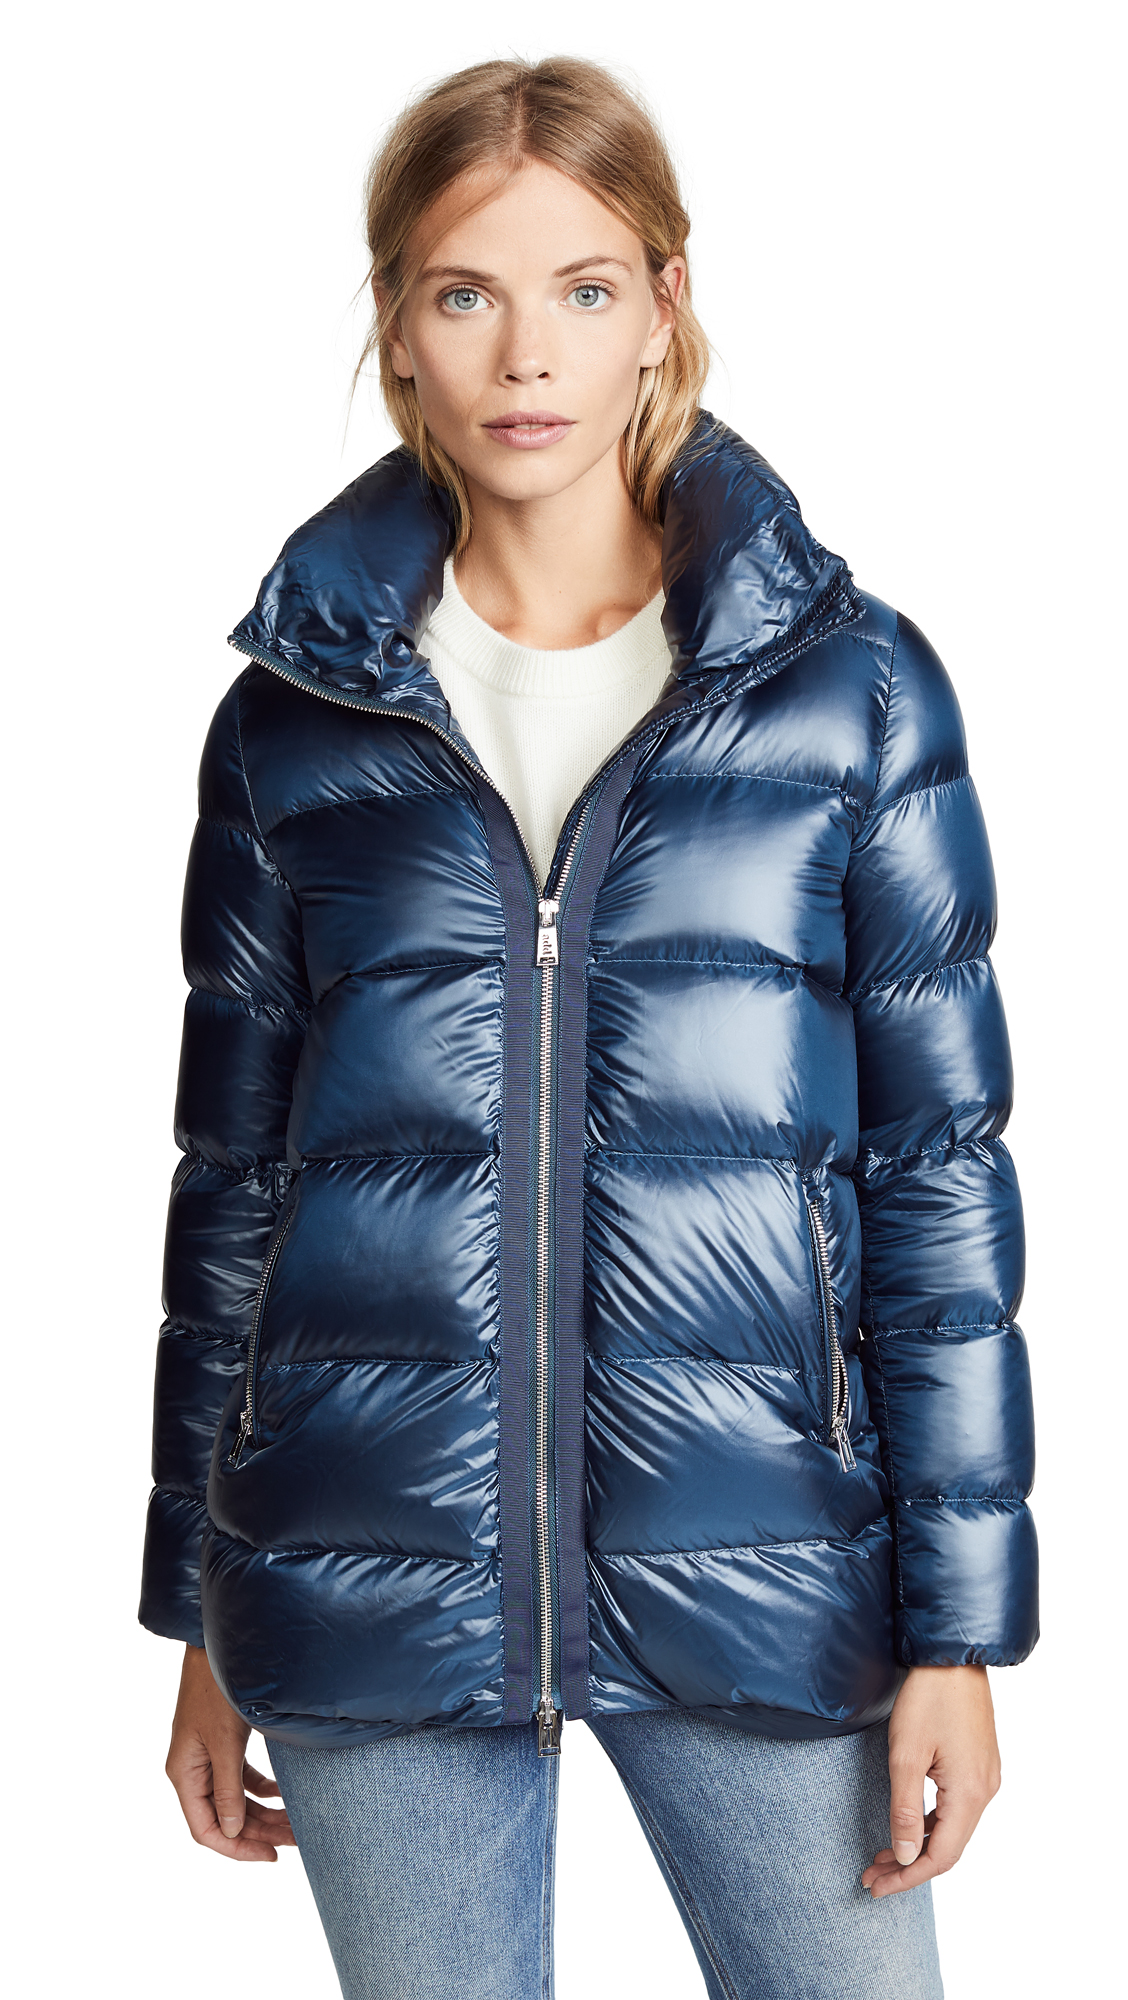 ADD Down Jacket in Seaport